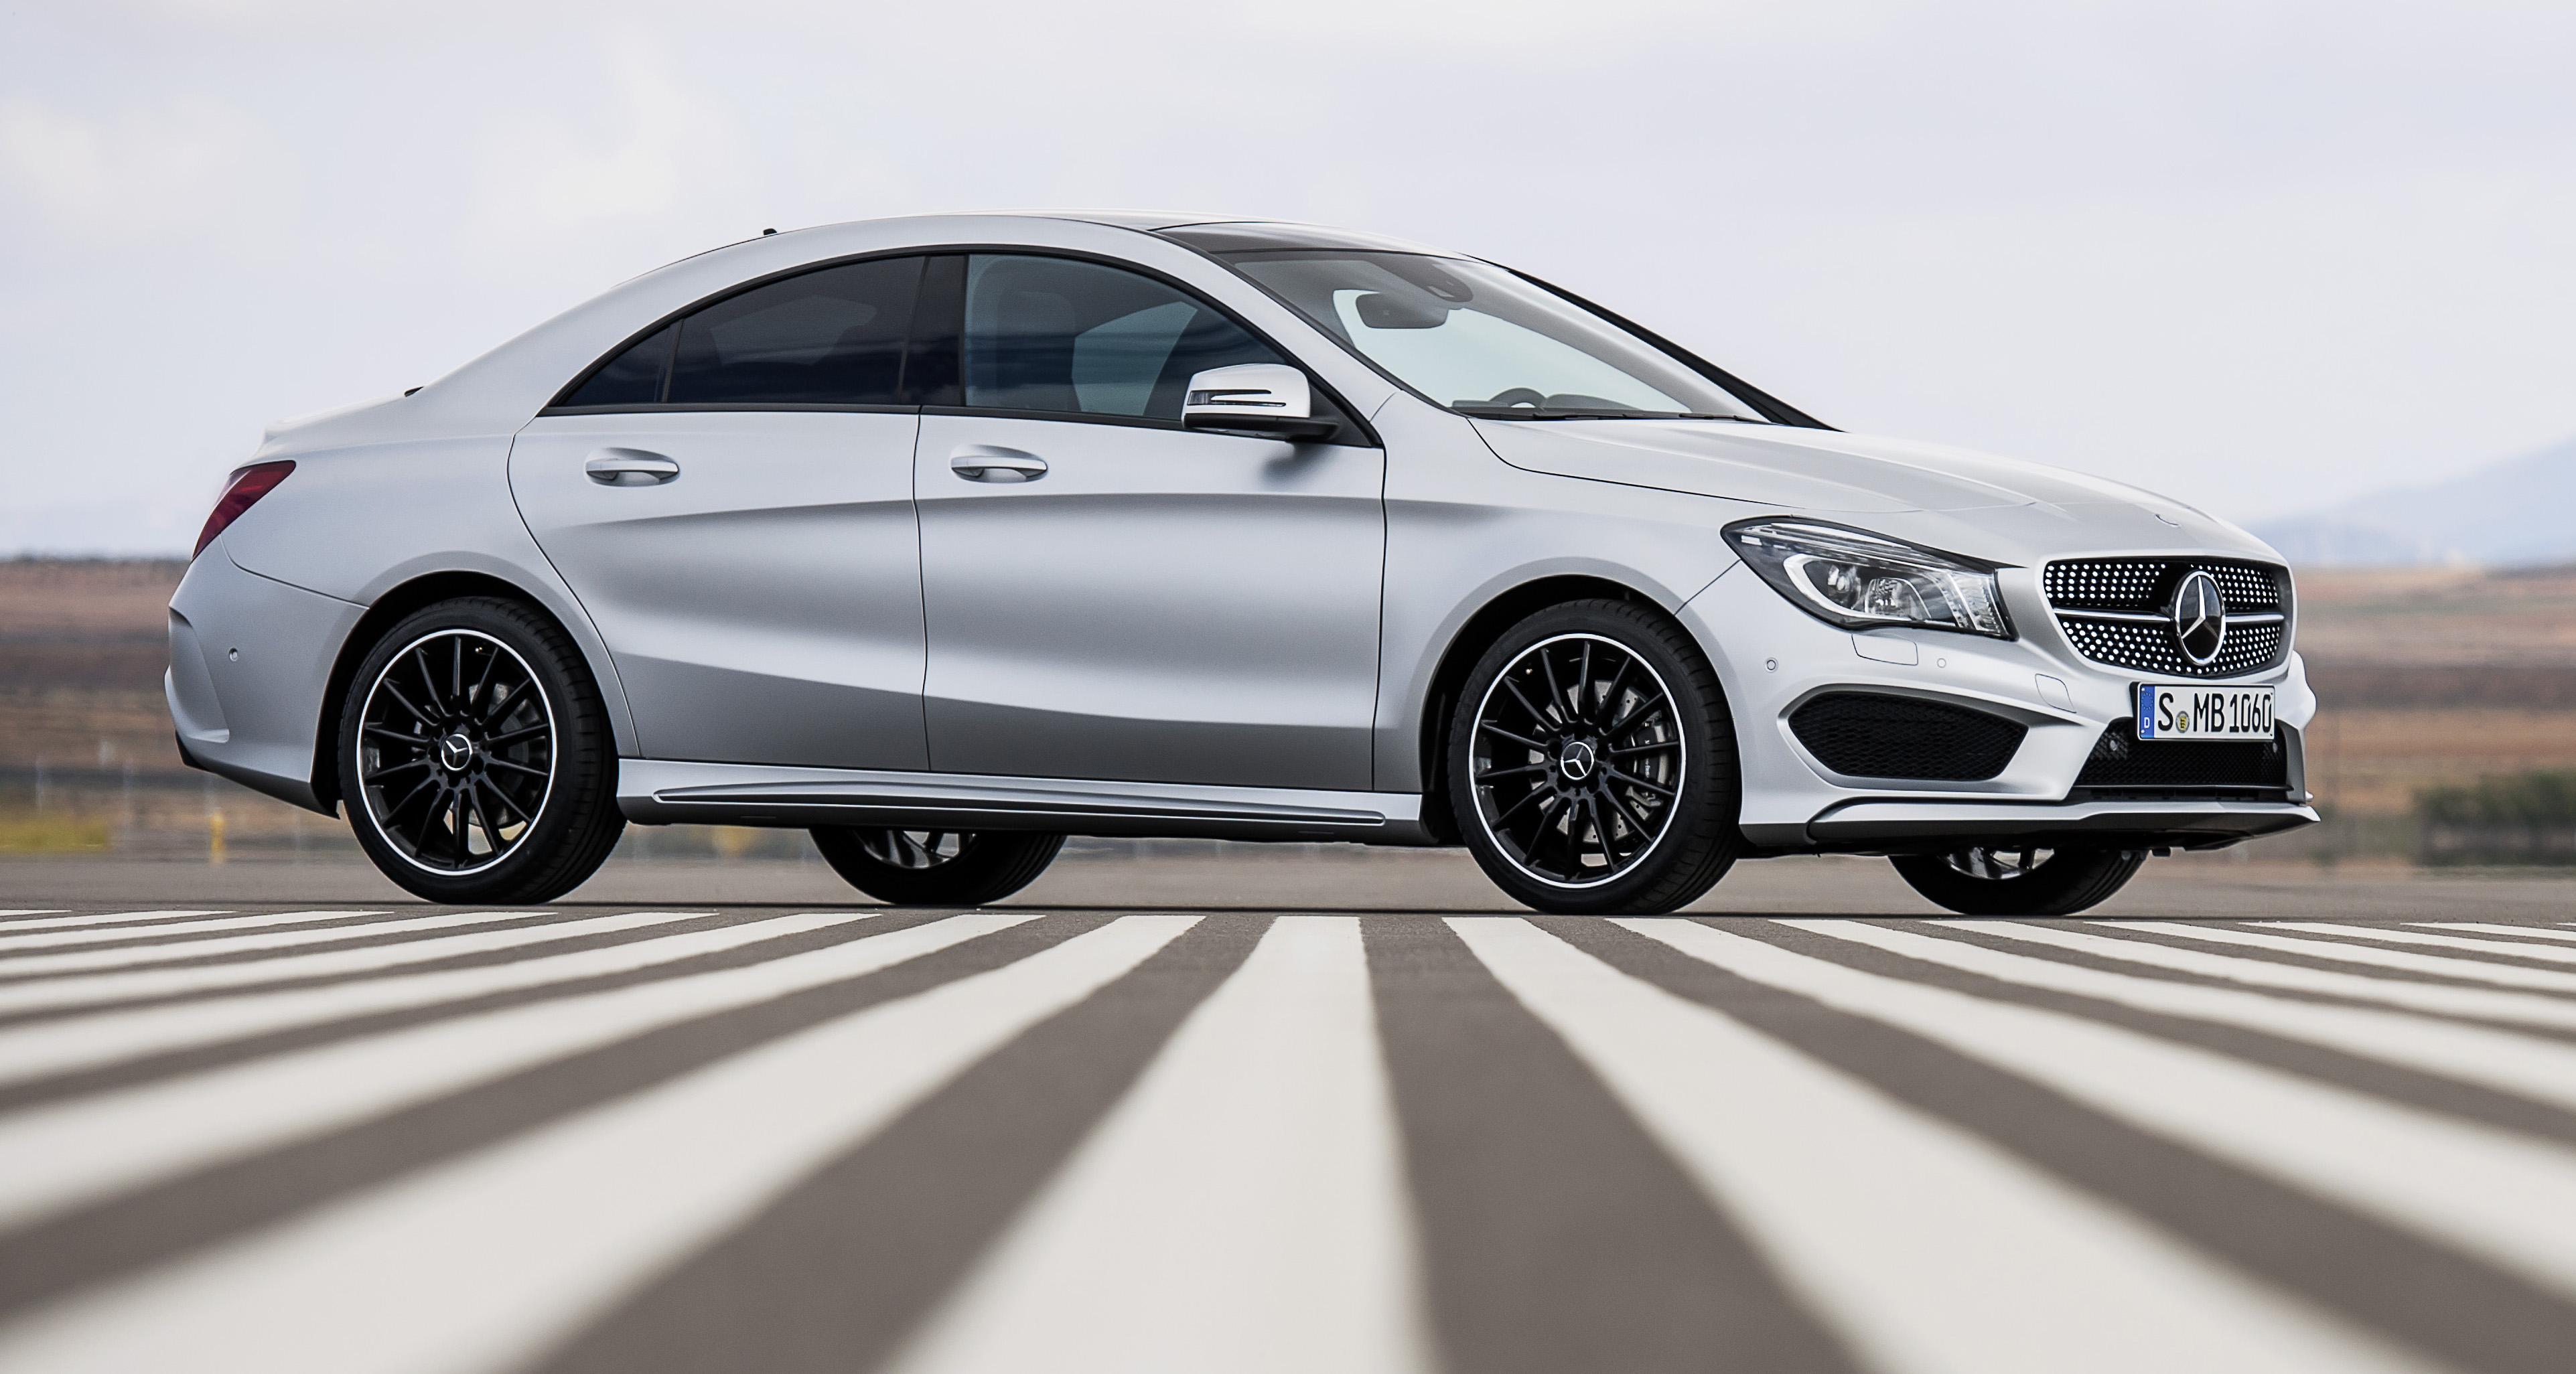 New mercedes benz cla class makes its debut image 149612 for Mercedes benz cla class price